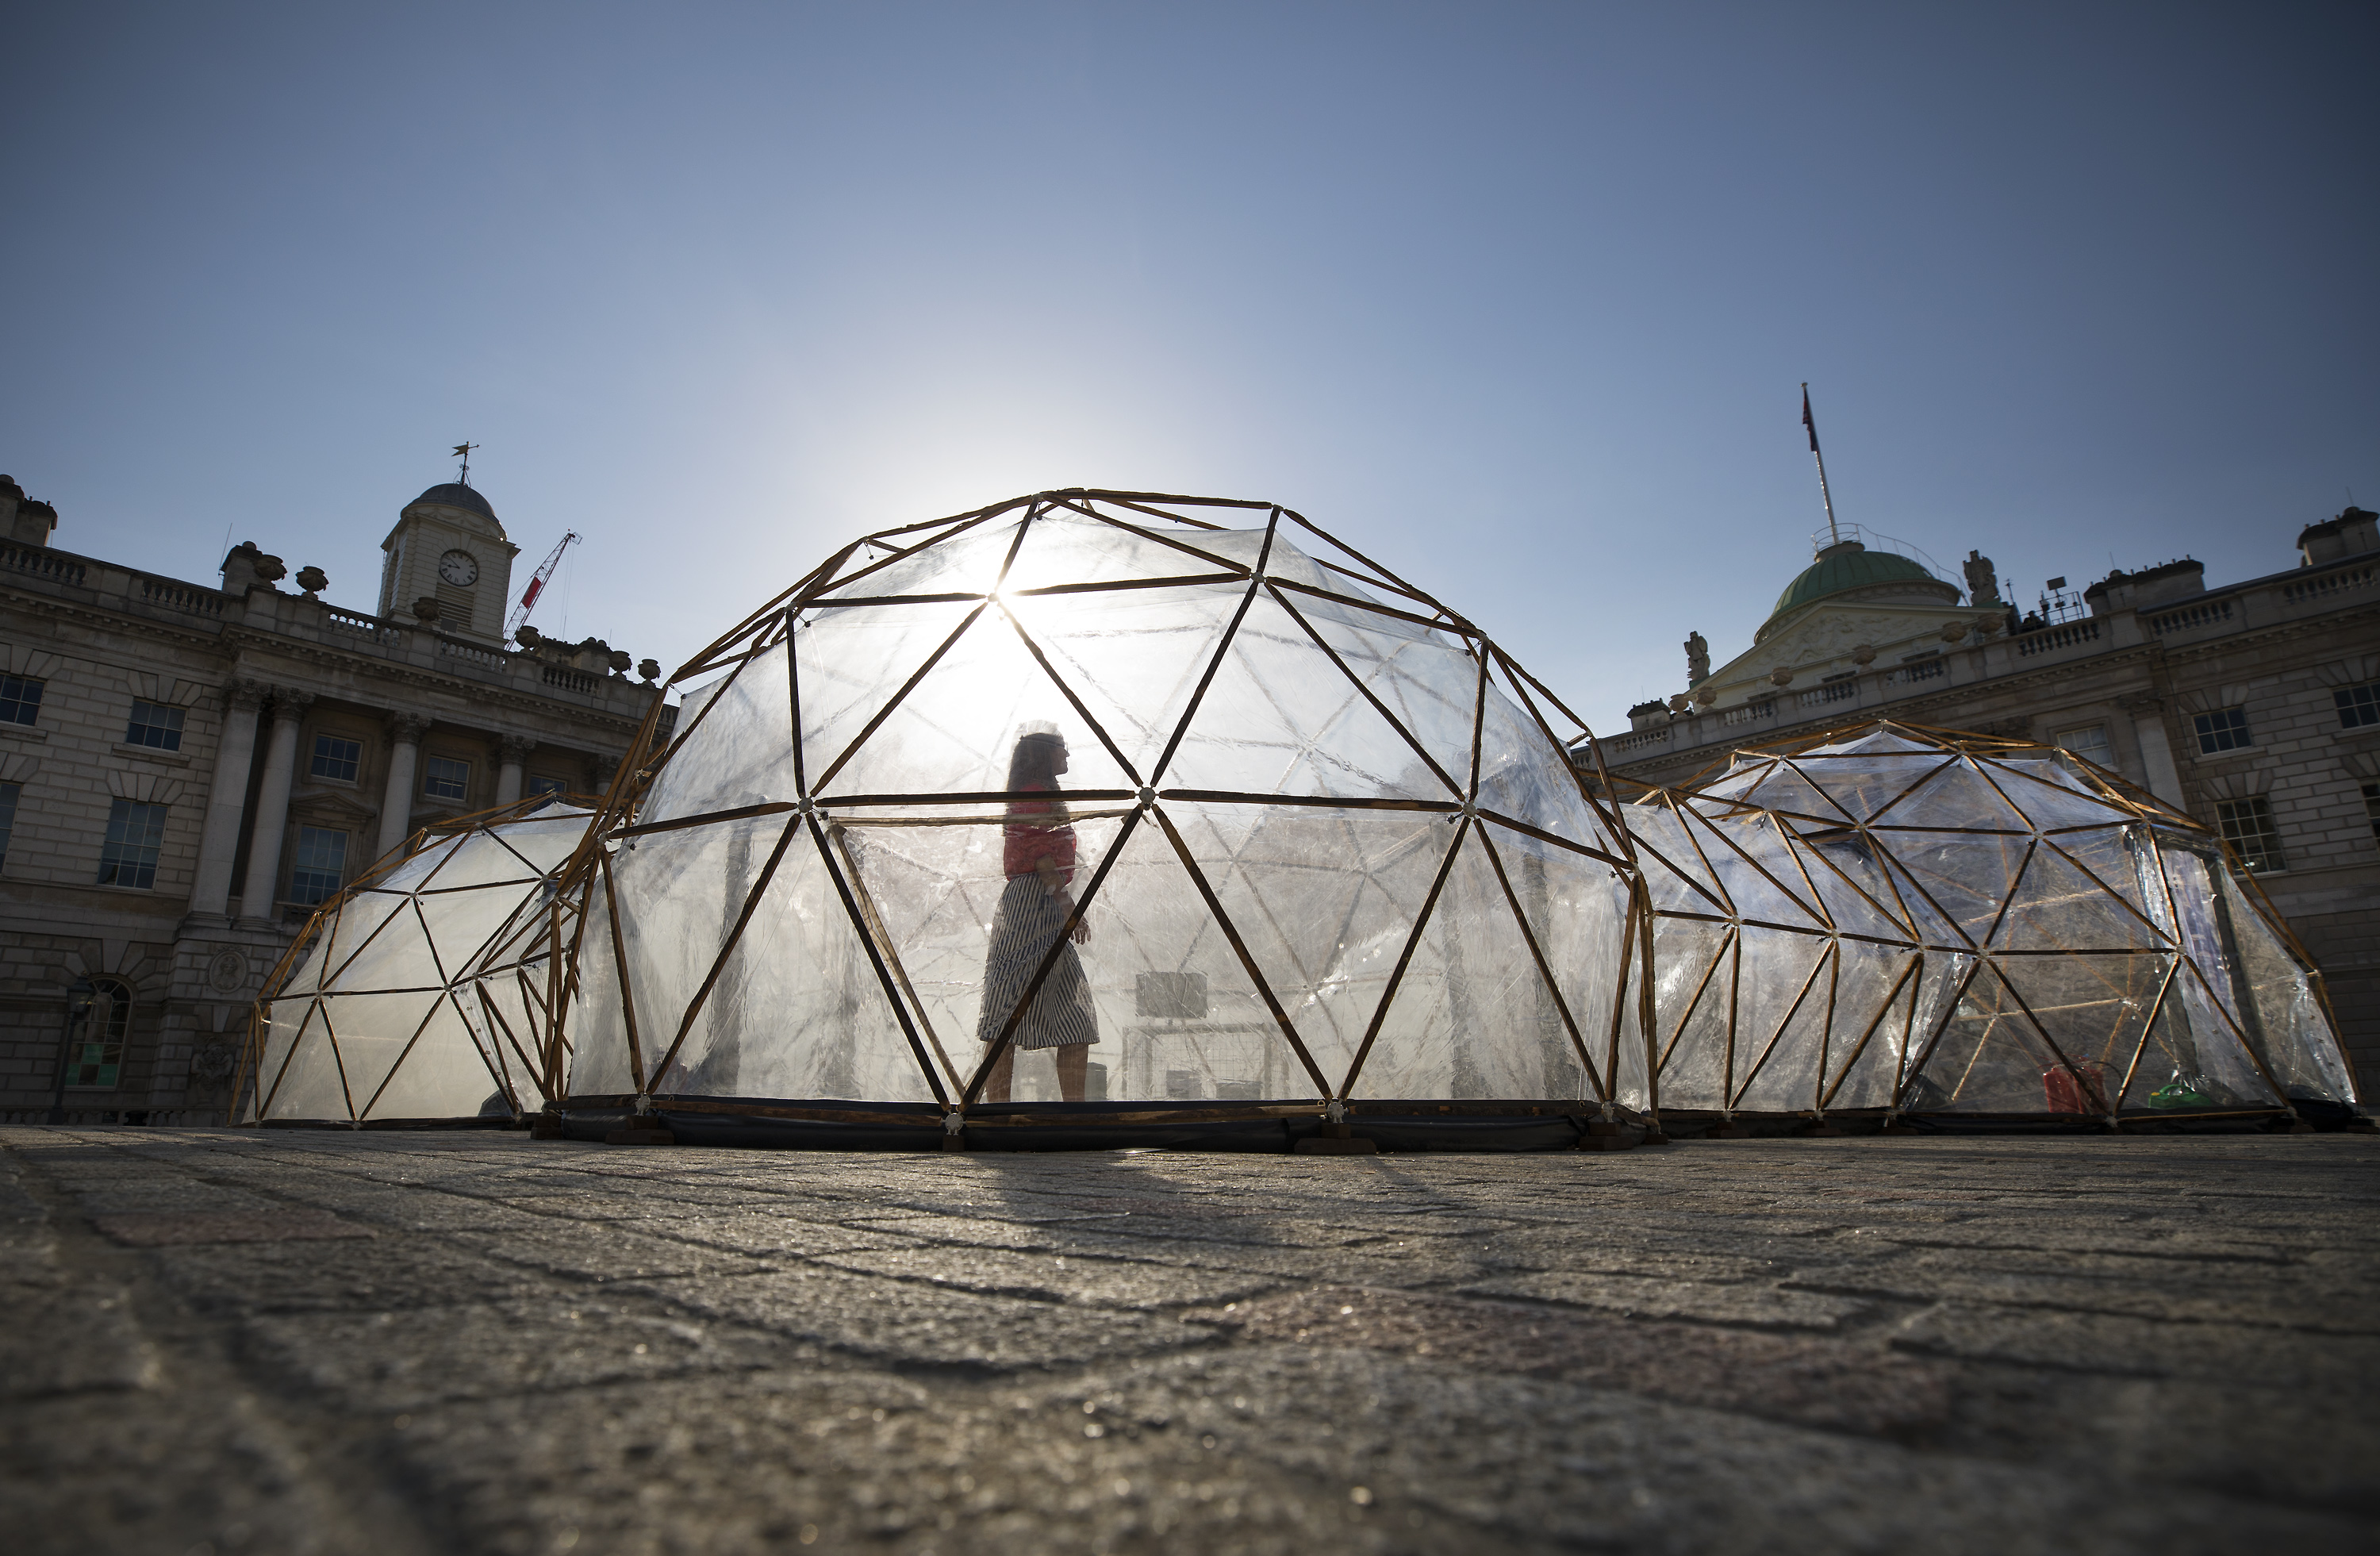 18/04/2018. London, UK. Visitors walk through British artist Michael Pinsky's Pollution Pods, a new sensory work, installed in the courtyard at Somerset House in London to mark Earth Day 2018. A series of five connecting domes recreate the pollution from London, Beijing, São Paulo, New Delhi and Tautra in Norway. Visitors are invited to experience first-hand the difference in the air quality of global environments. The Pollution Pods are open until 25th April 2018, including Earth Day on the 22nd April. Photo credit: Peter Macdiarmid